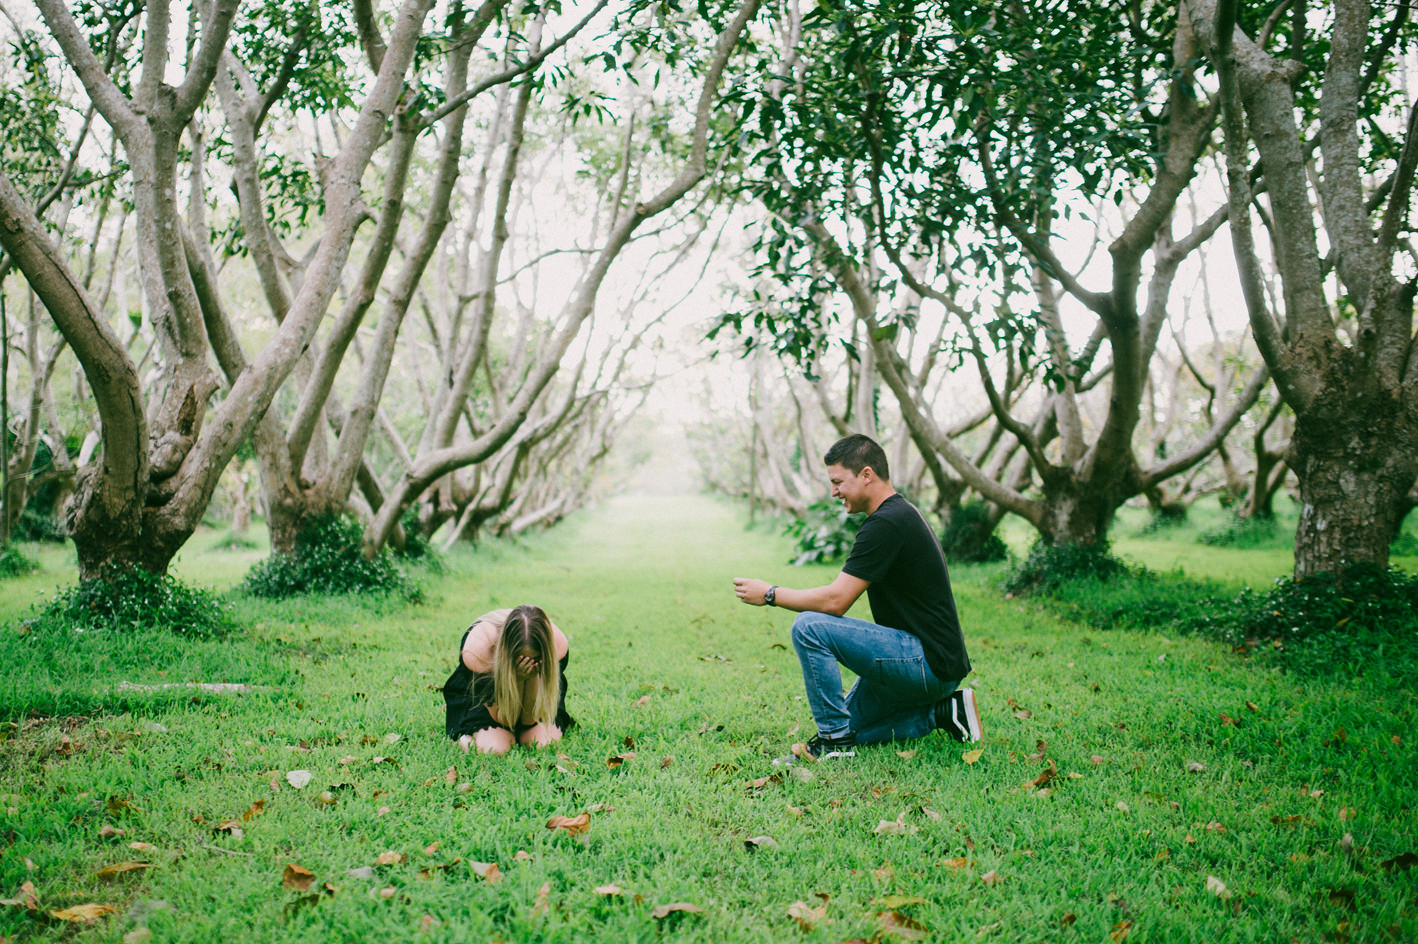 019-proposal-dan-ash_sophie-baker-photography